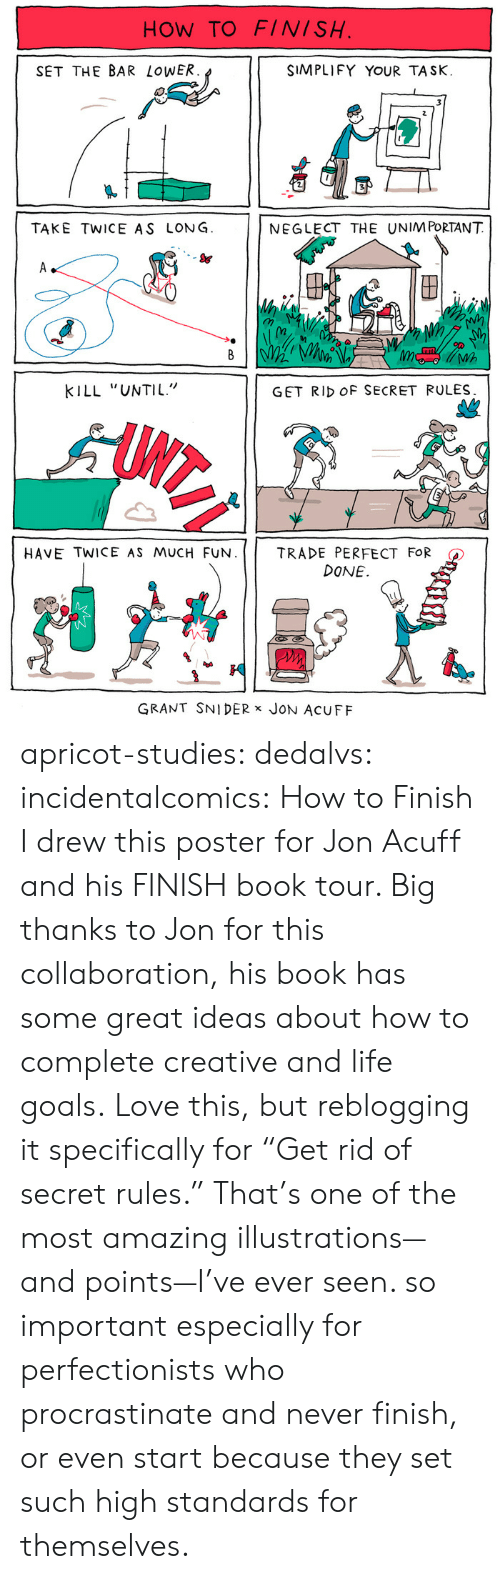 """Amazon, Books, and Goals: HOW TO FINISH  SET THE BAR LoWER  SIMPLIFY YOUR TASK.  TAKE TWICE AS LONG  NEGLECT THE UNIM PORTANT  S&  (n  Wh  KILL """"UNTIL""""  GET RID OF SECRET RULES  HAVE TWICE AS MUCH FUN.     TRADE PERFECT FOR  DONE.  GRANT SNIDER x JoN AcUFF apricot-studies:  dedalvs:  incidentalcomics:  How to Finish I drew this poster for Jon Acuff and his FINISH book tour. Big thanks to Jon for this collaboration, his book has some great ideas about how to complete creative and life goals.   Love this, but reblogging it specifically for """"Get rid of secret rules."""" That's one of the most amazing illustrations—and points—I've ever seen.   so important especially for perfectionists who procrastinate and never finish, or even start because they set such high standards for themselves."""